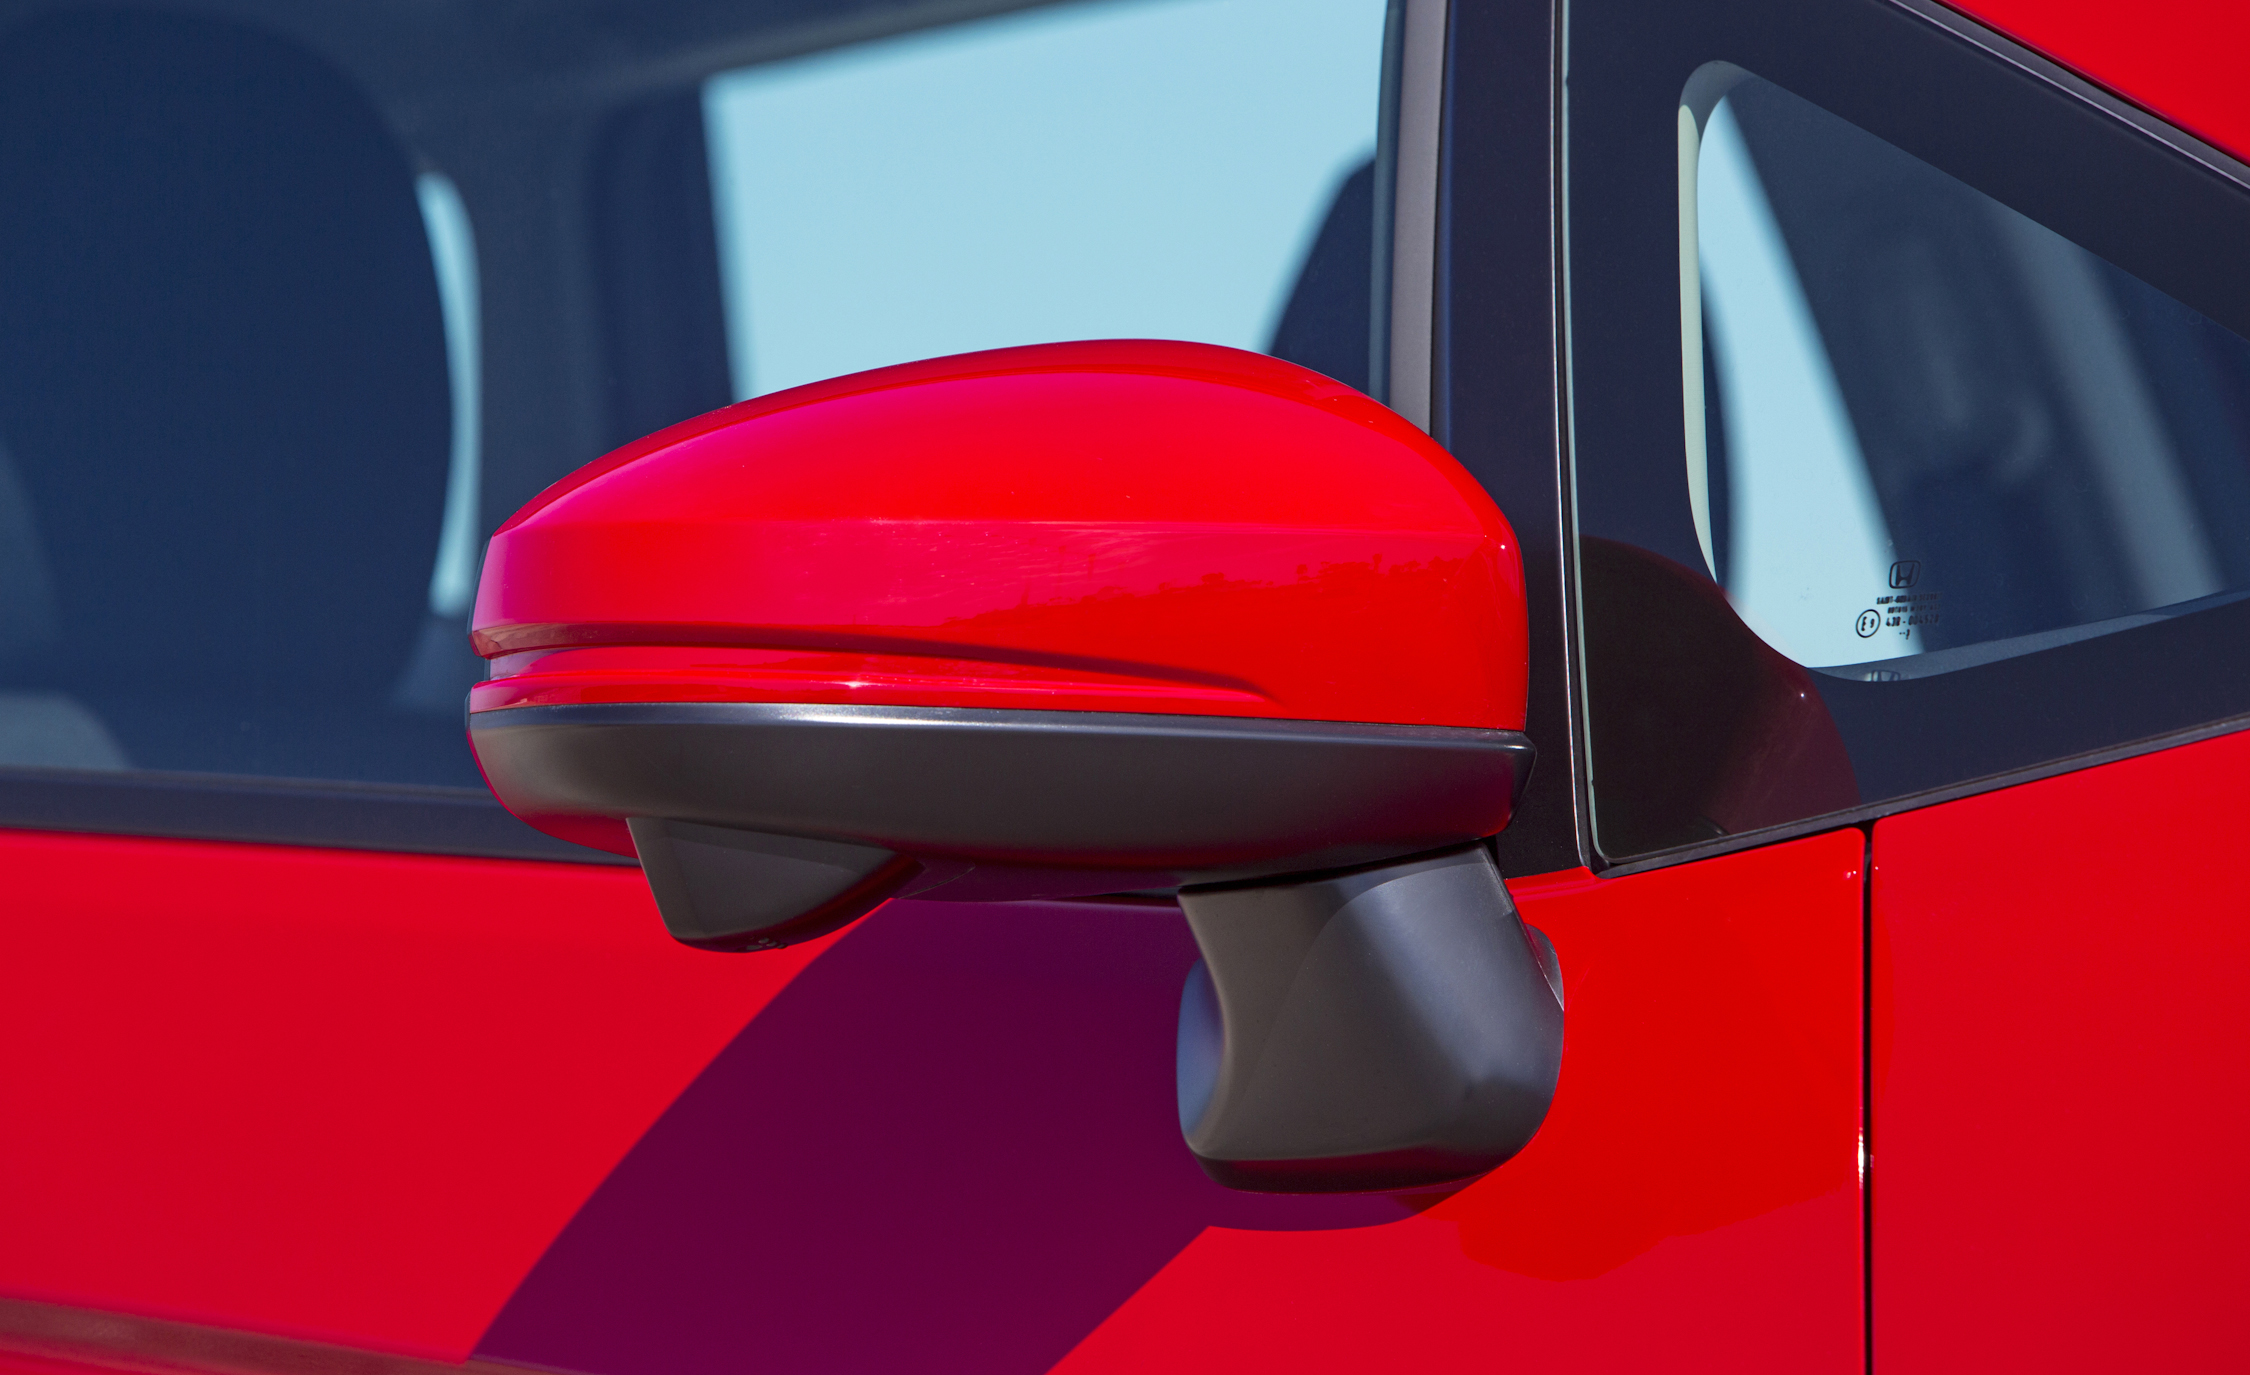 2015 Honda Fit Side View Mirror (View 2 of 16)